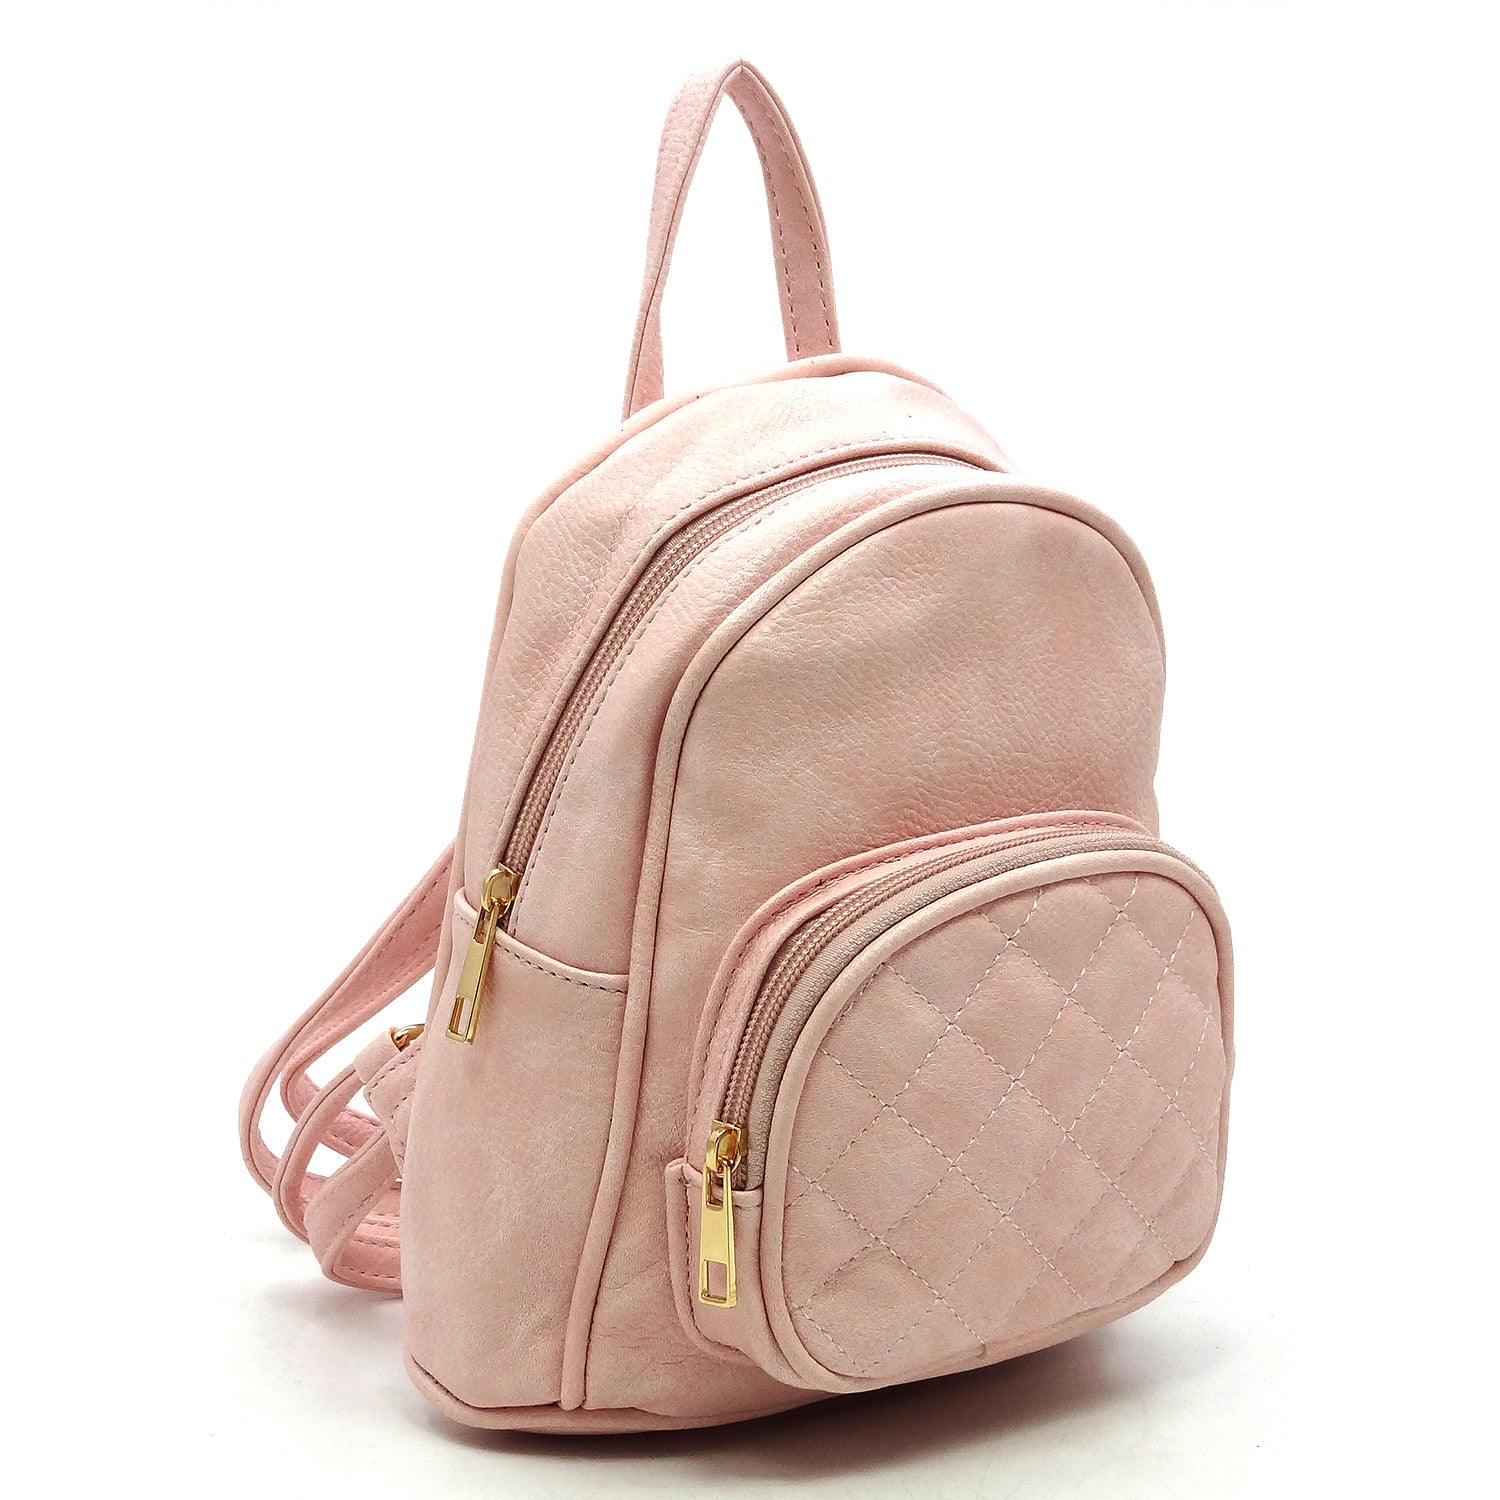 Pink FW backpack with stitching